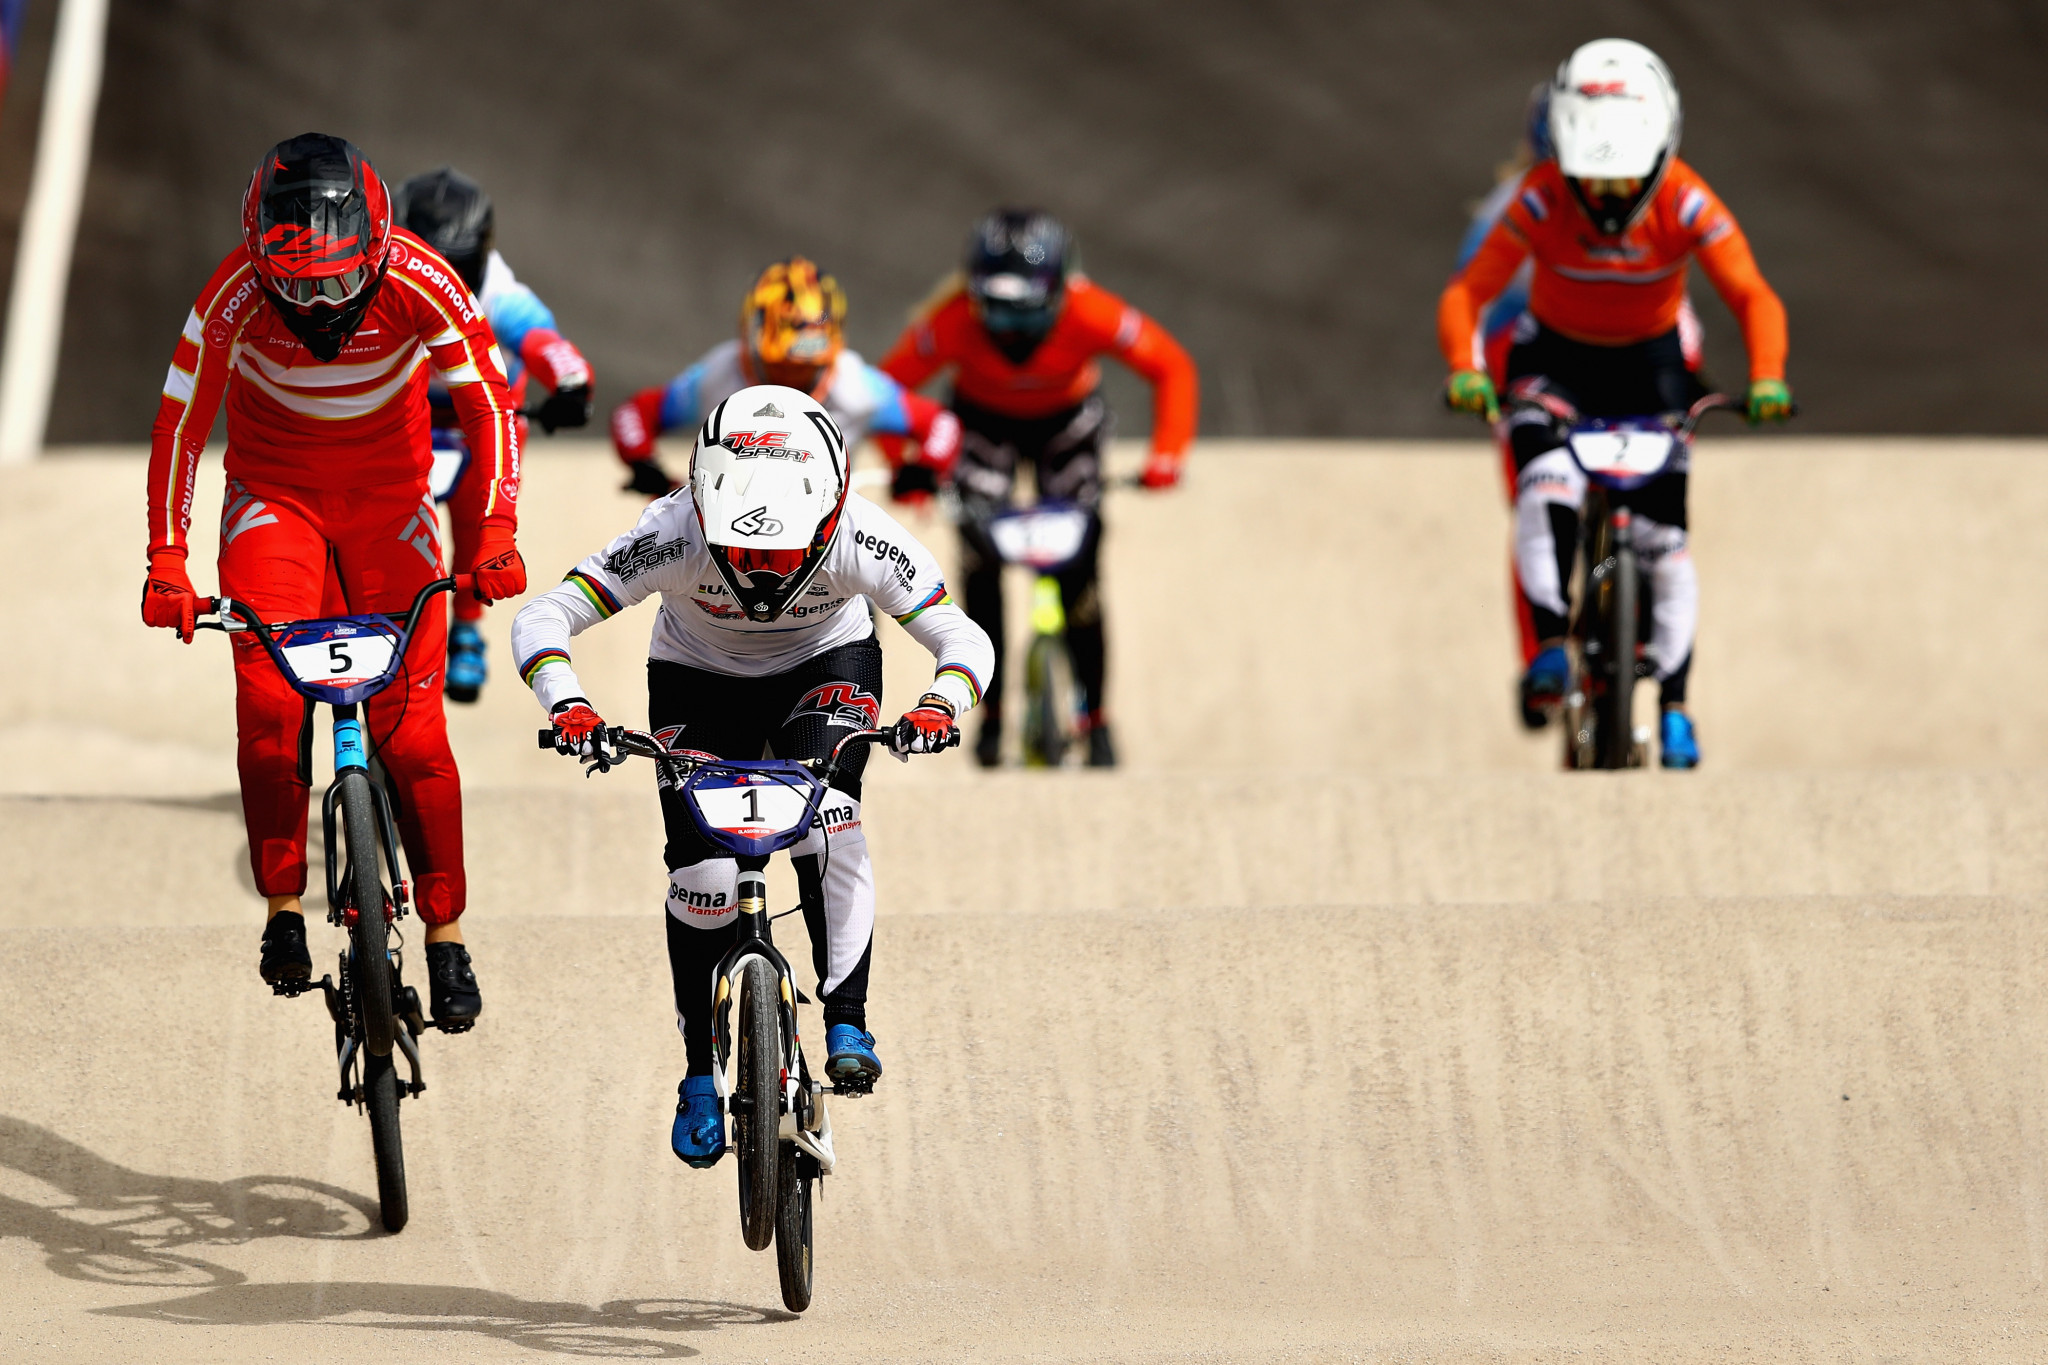 BMX Supercross World Cup season set to resume in Papendal